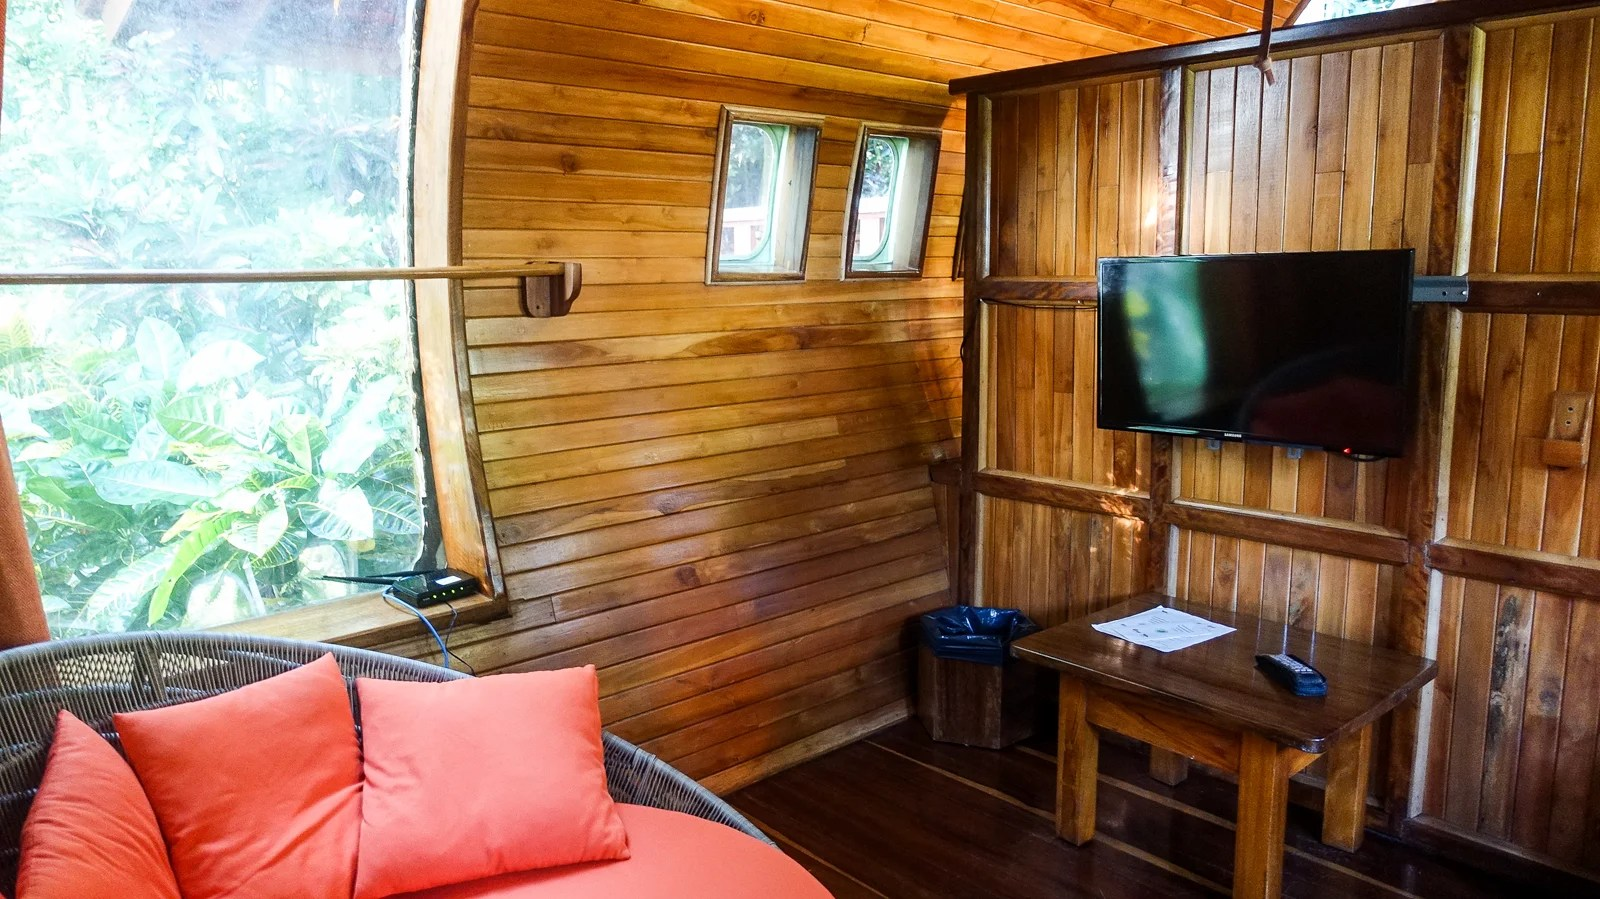 A Review of the Fuselage Suite at the Hotel Costa Verde